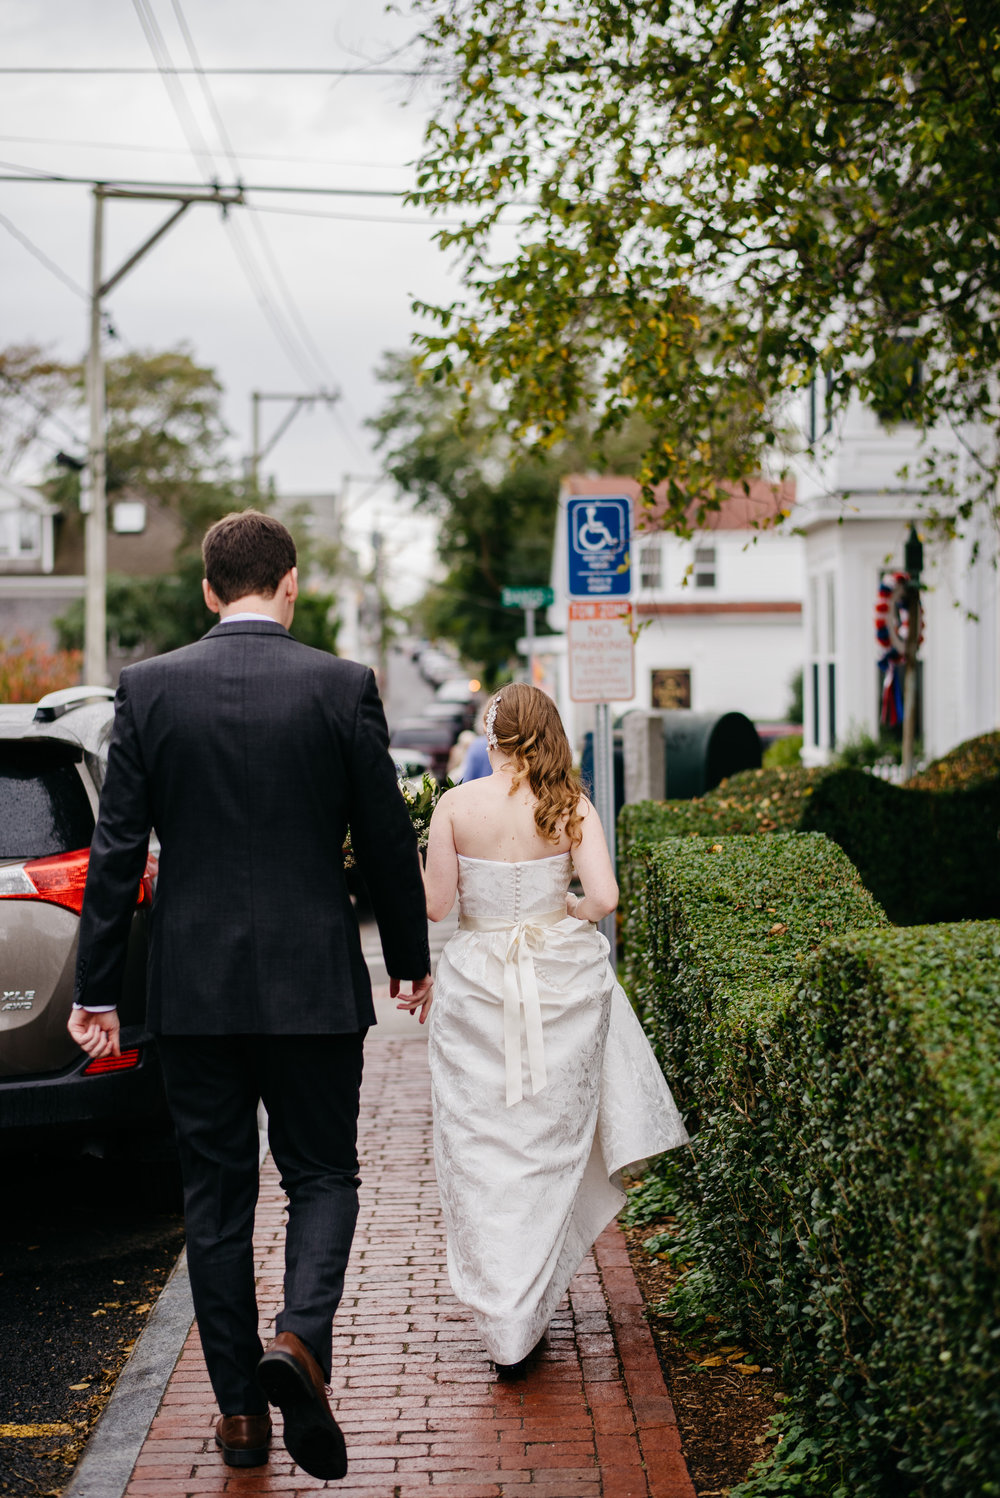 p-town wedding couple walking down the street